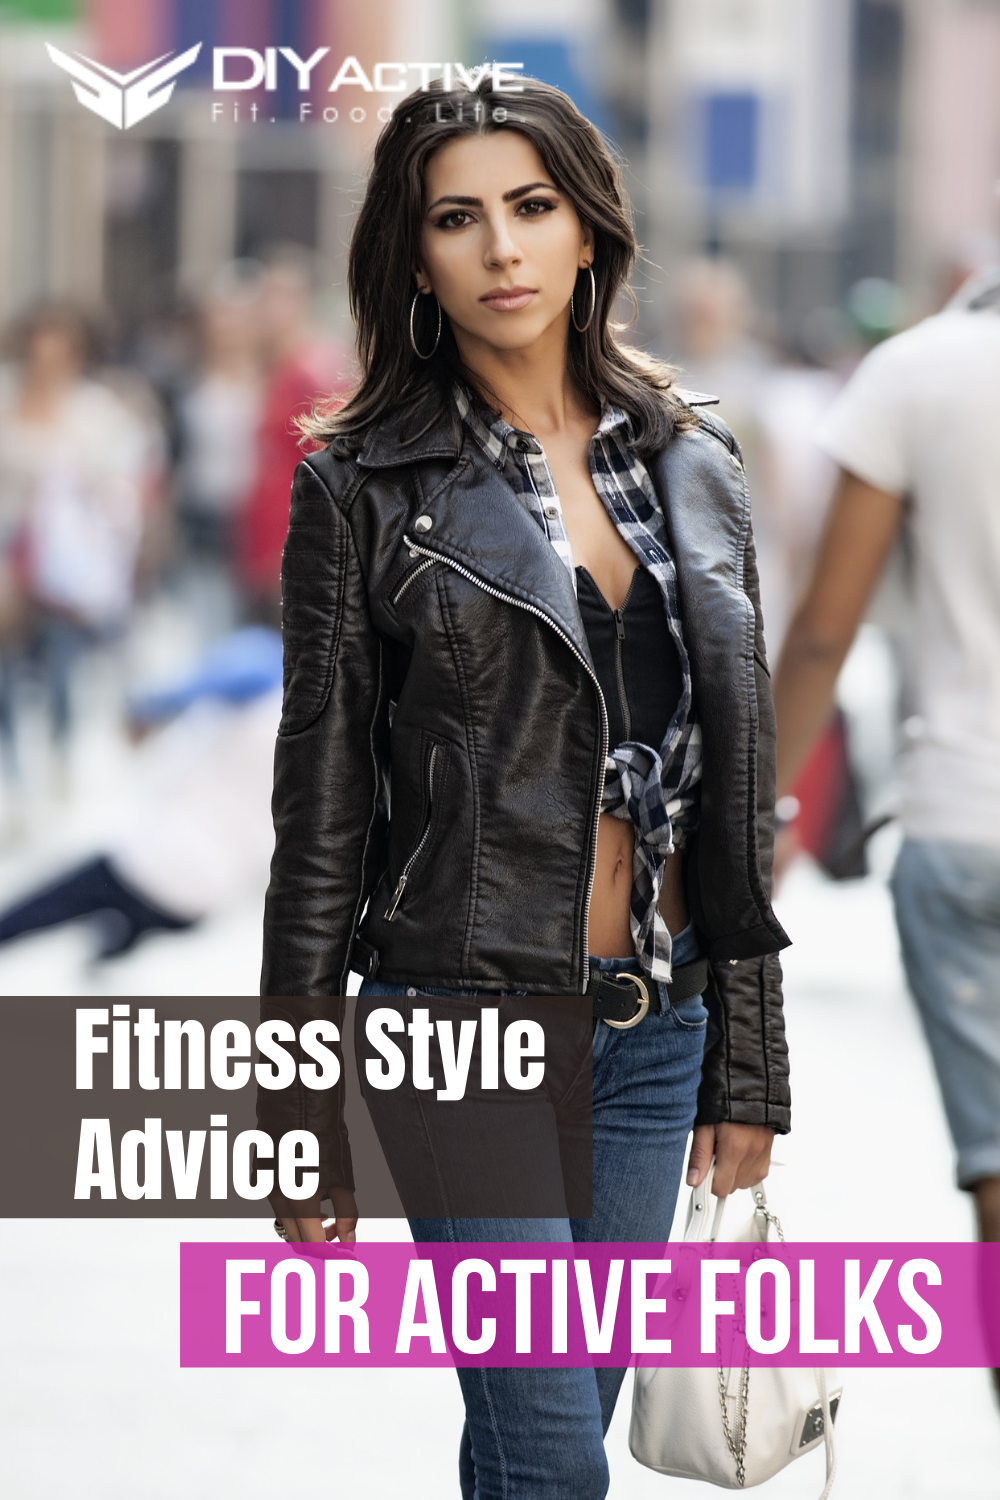 Fitness Style Advice for Active, Adventurous Folks